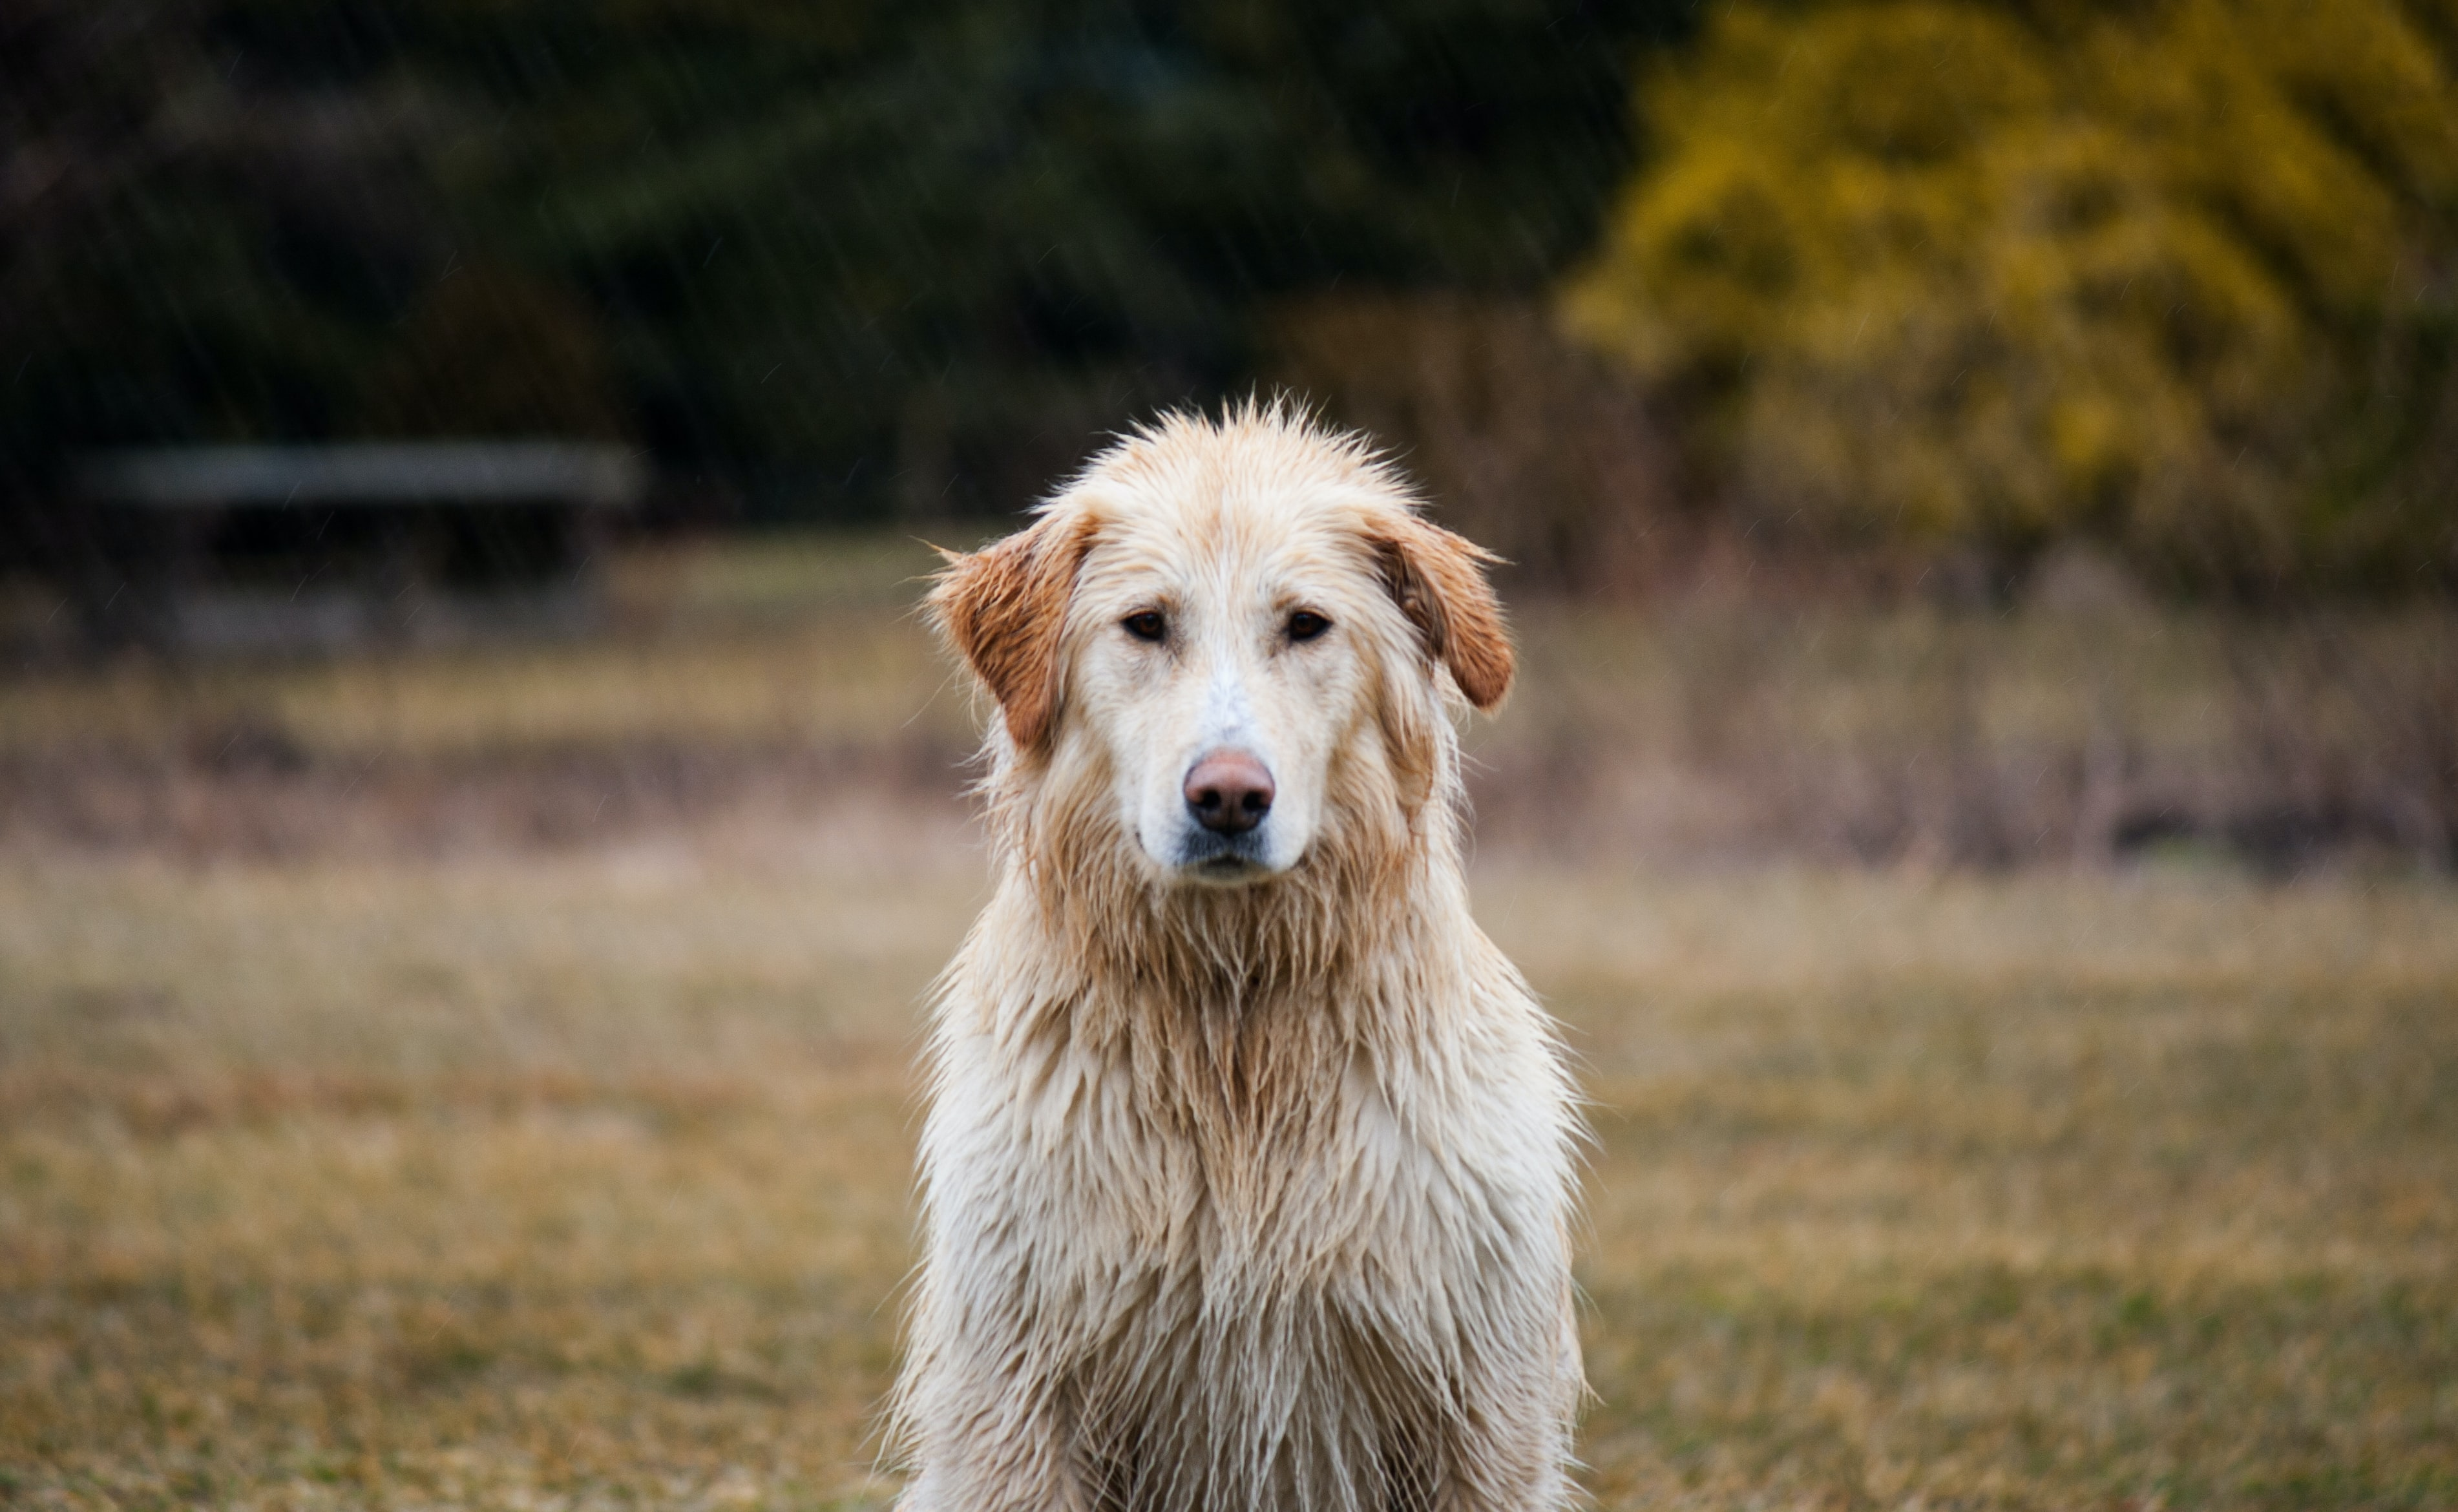 shallow focus photography of adult golden retriever